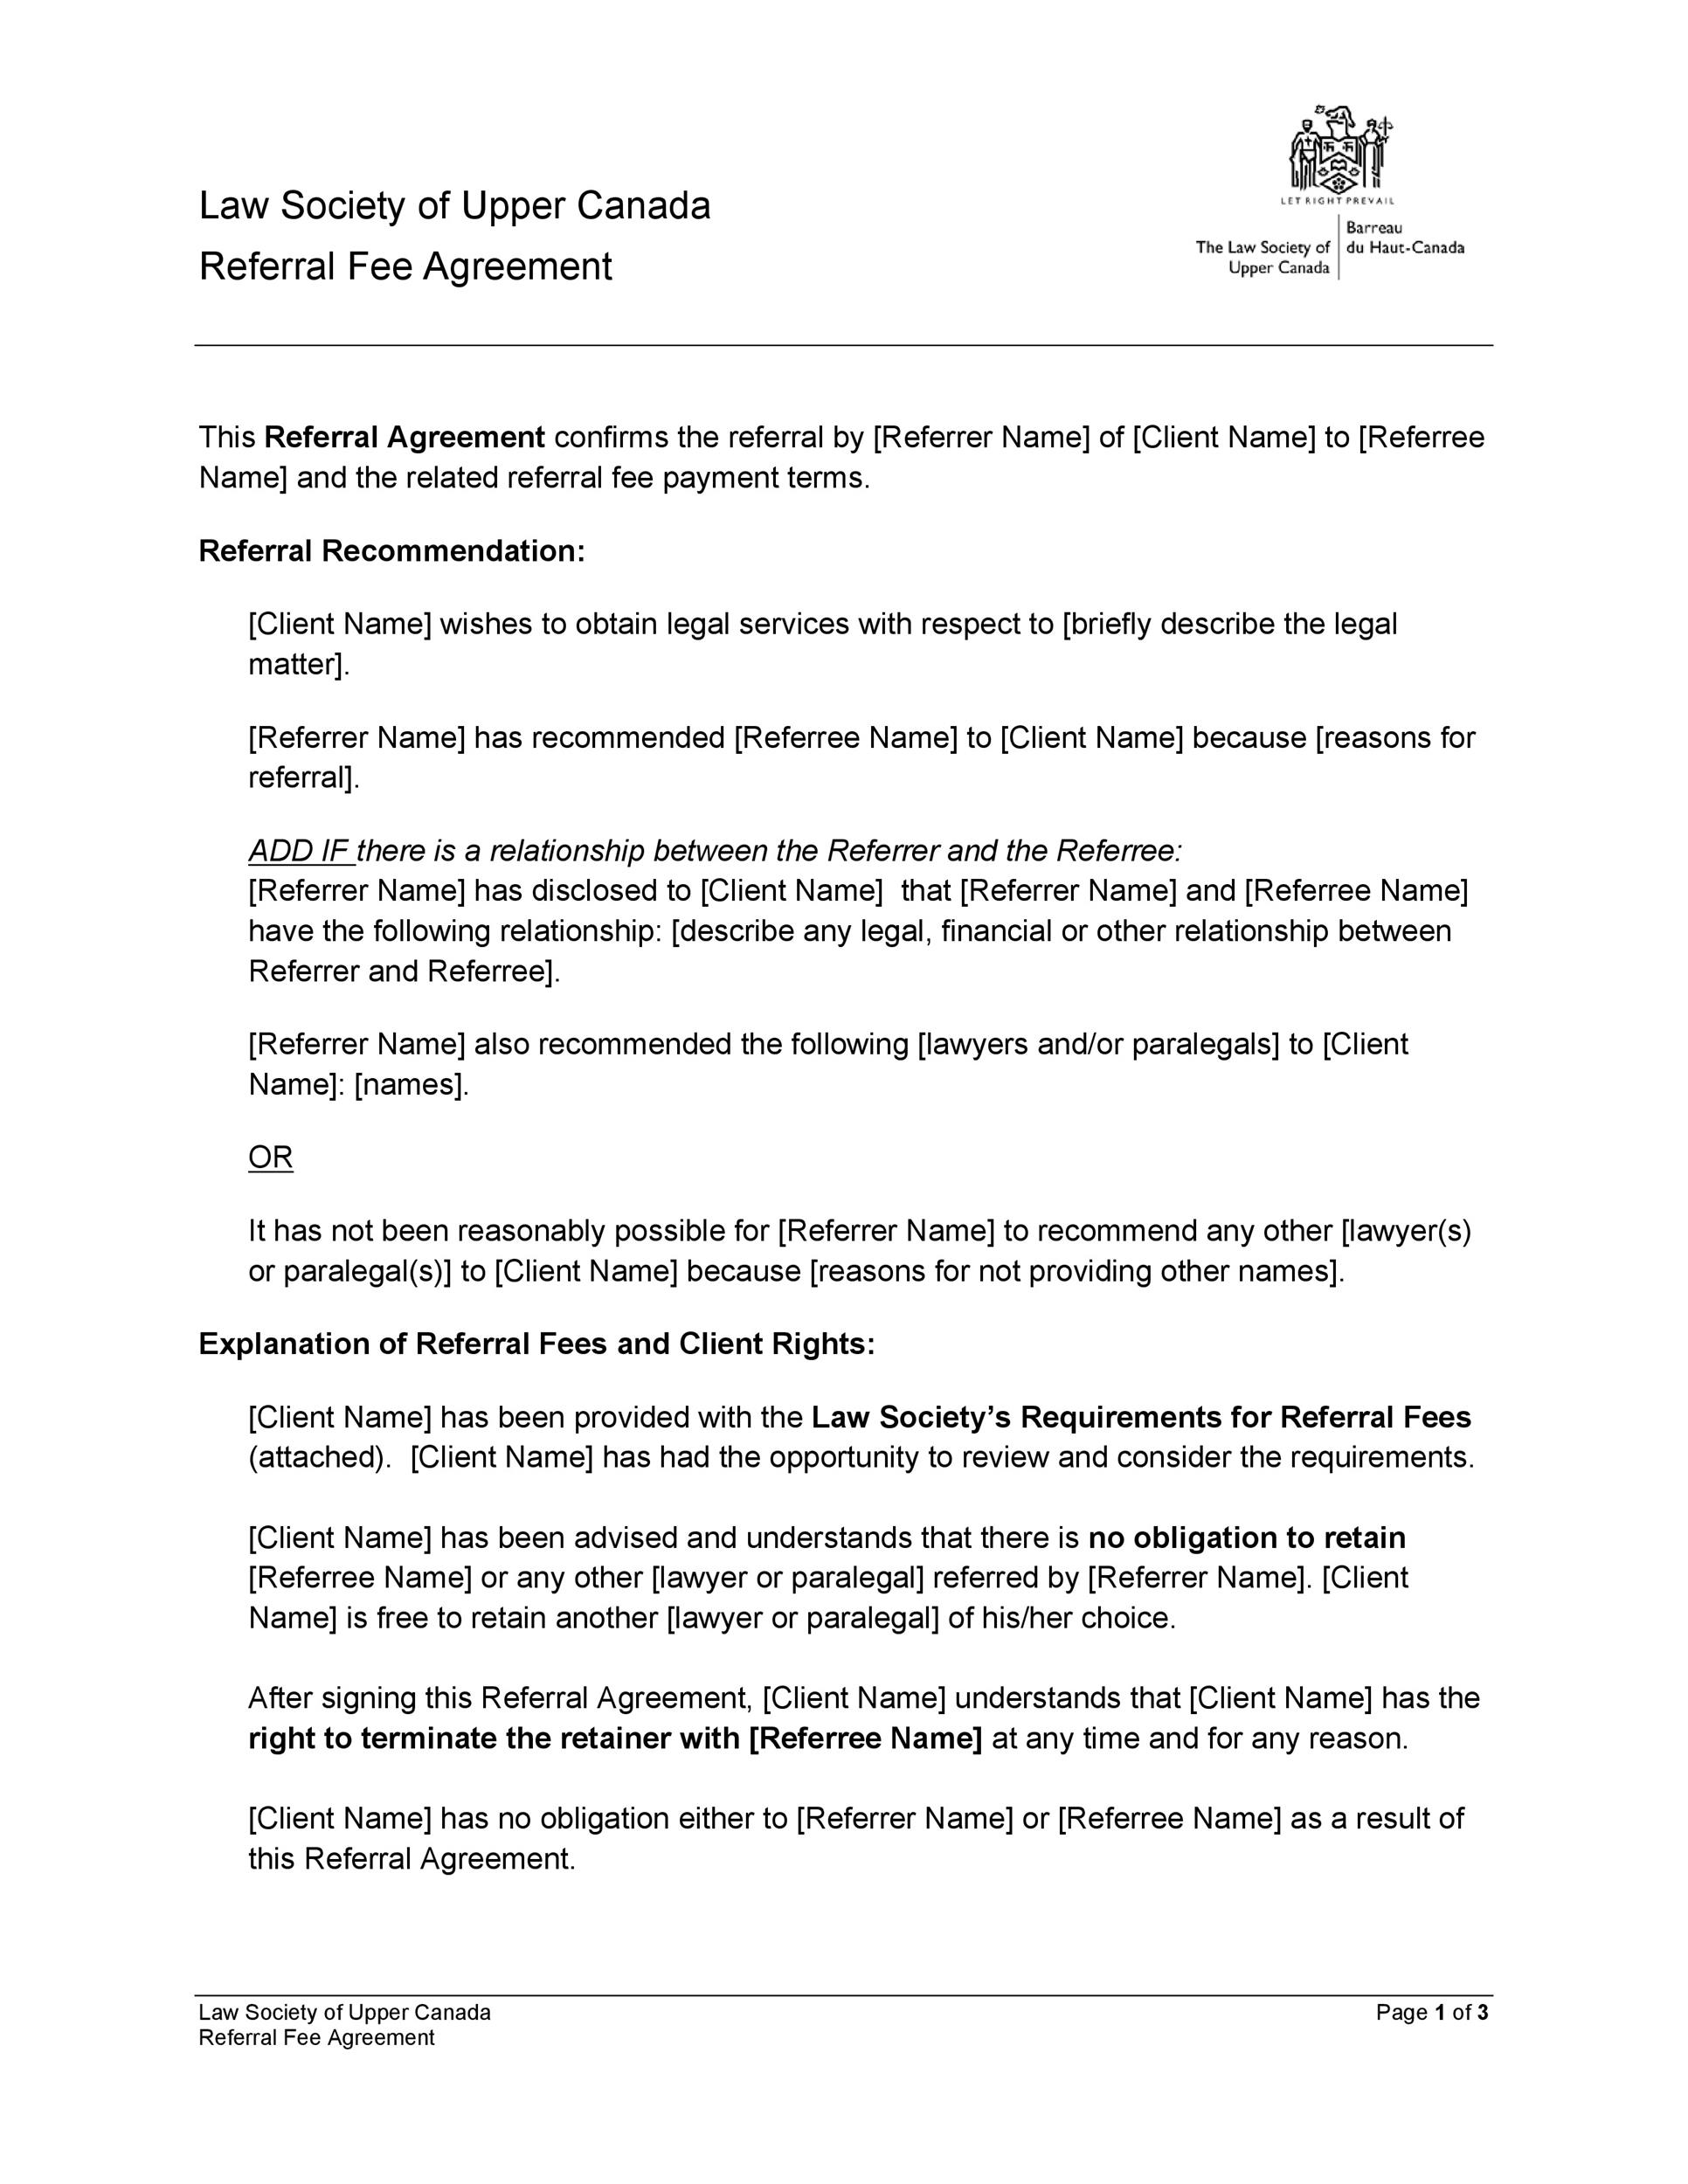 Free referral agreement template 03